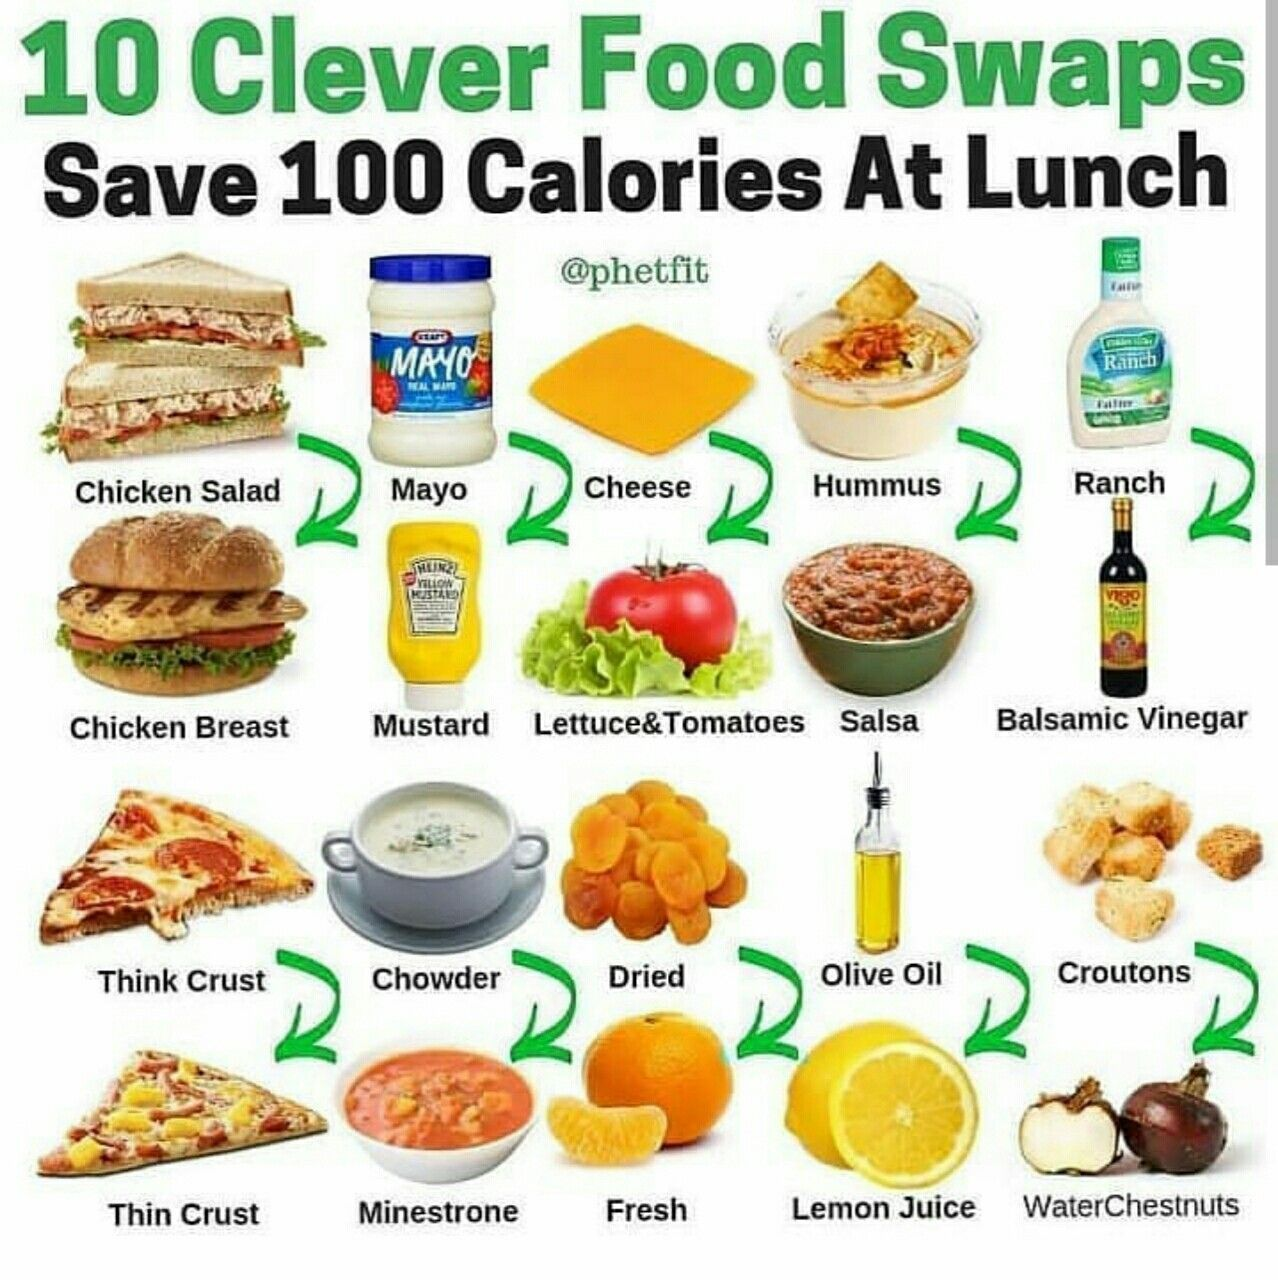 Here Are 10 Clever Food Swaps To Save 100 Calories At Lunch Healthy Food Swaps Fast Healthy Meals Food Swap